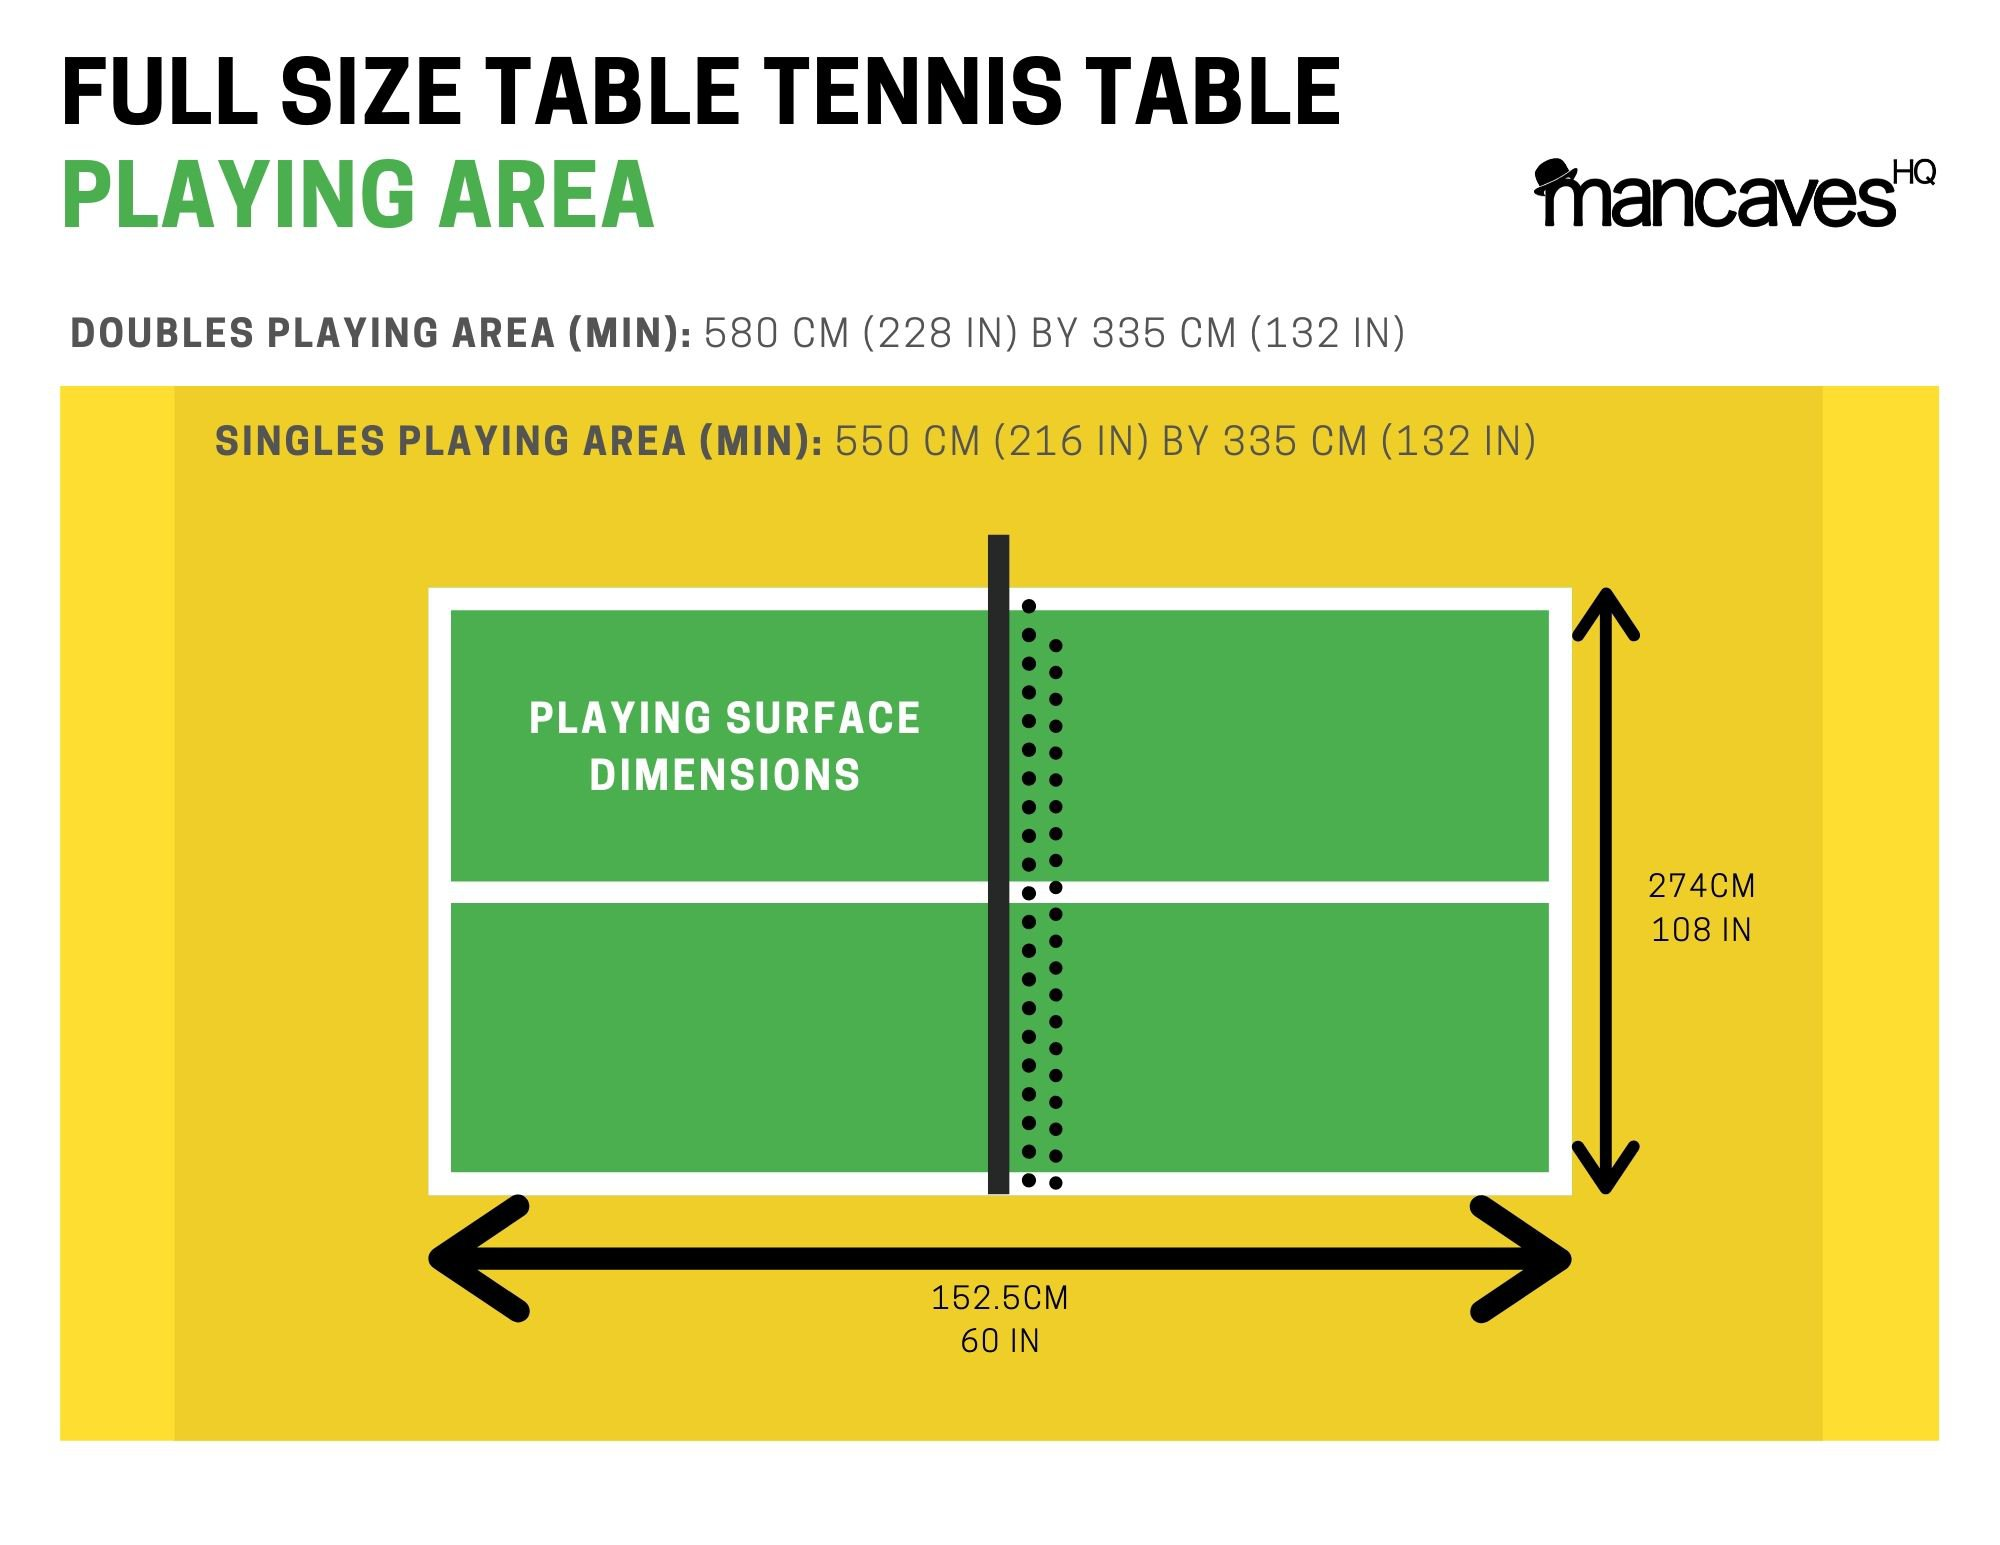 Full Size Table Tennis Table Playing Area.jpg